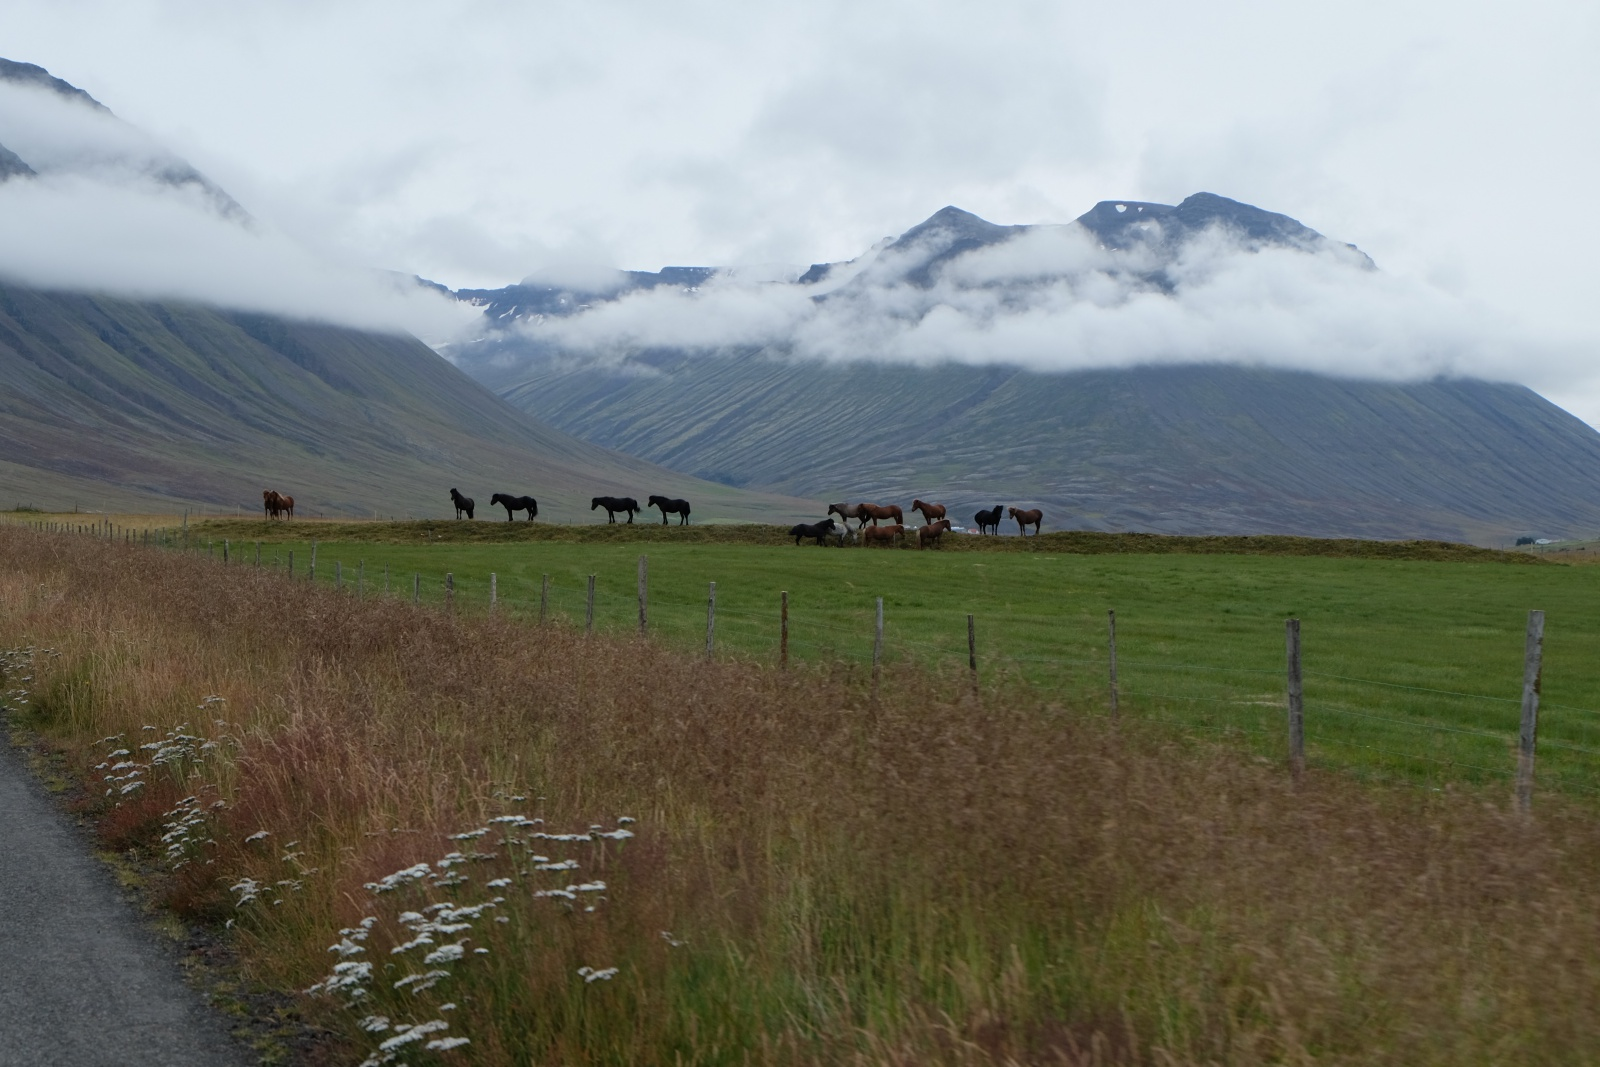 Line of horses along the road